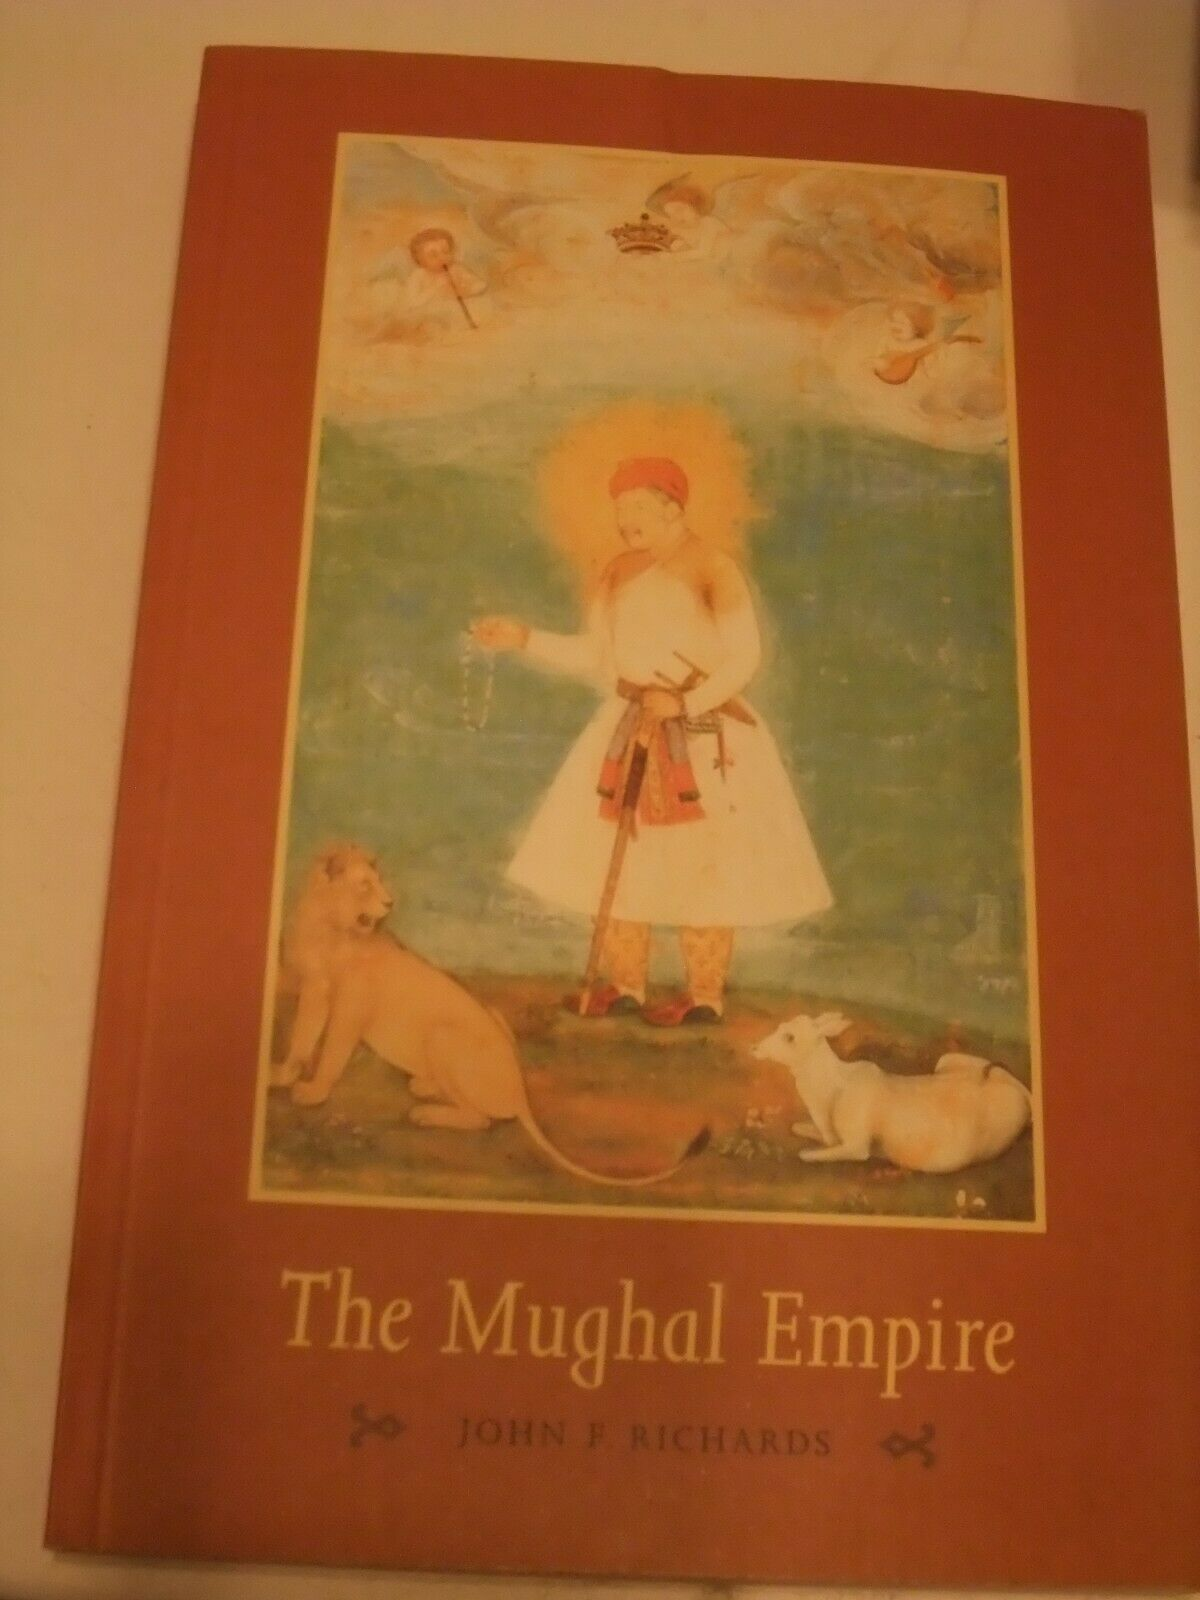 Primary image for The Mughal Empire by John F. Richards (English) PB